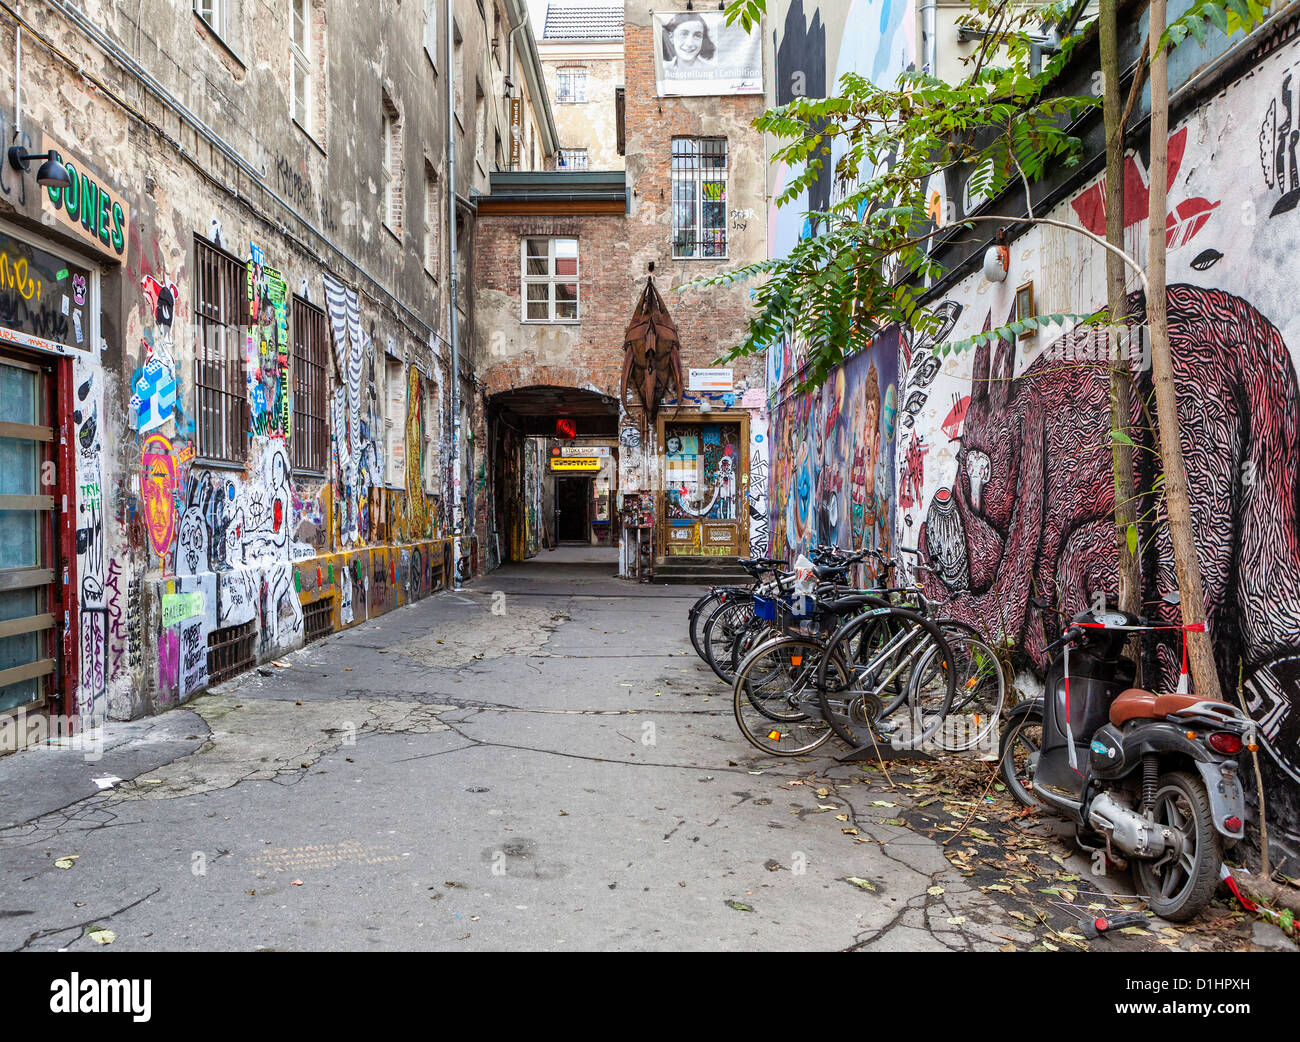 graffiti and street art decorates the inner courtyard of haus stock photo 52636937 alamy. Black Bedroom Furniture Sets. Home Design Ideas